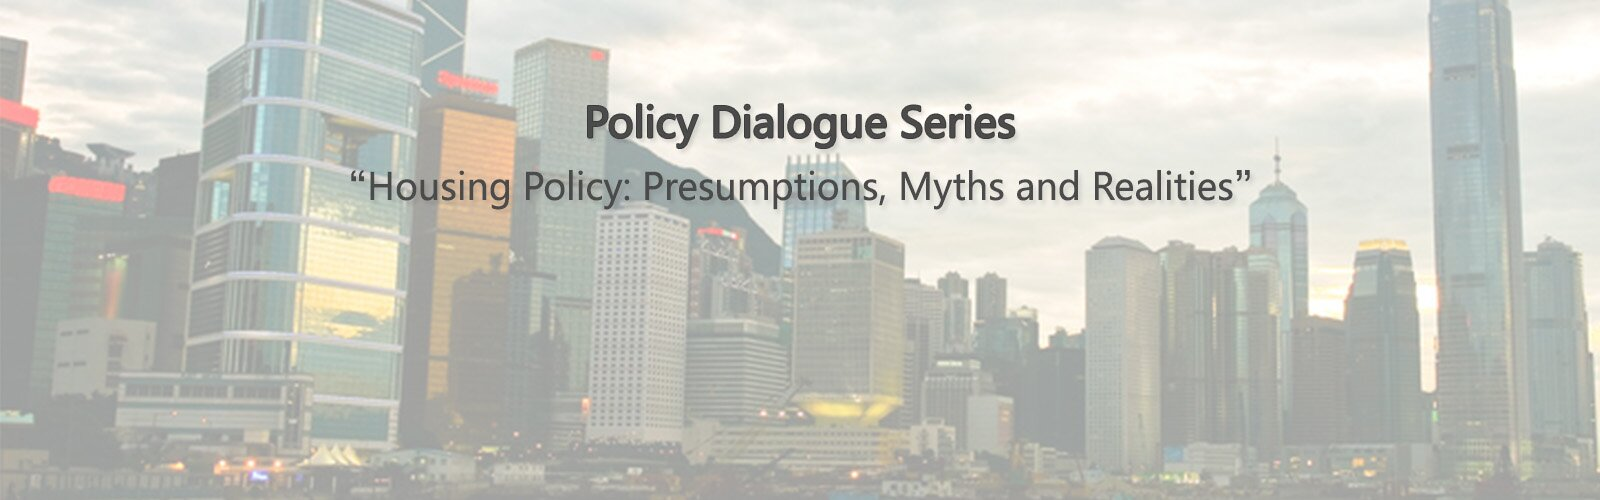 Policy dialogue_2b